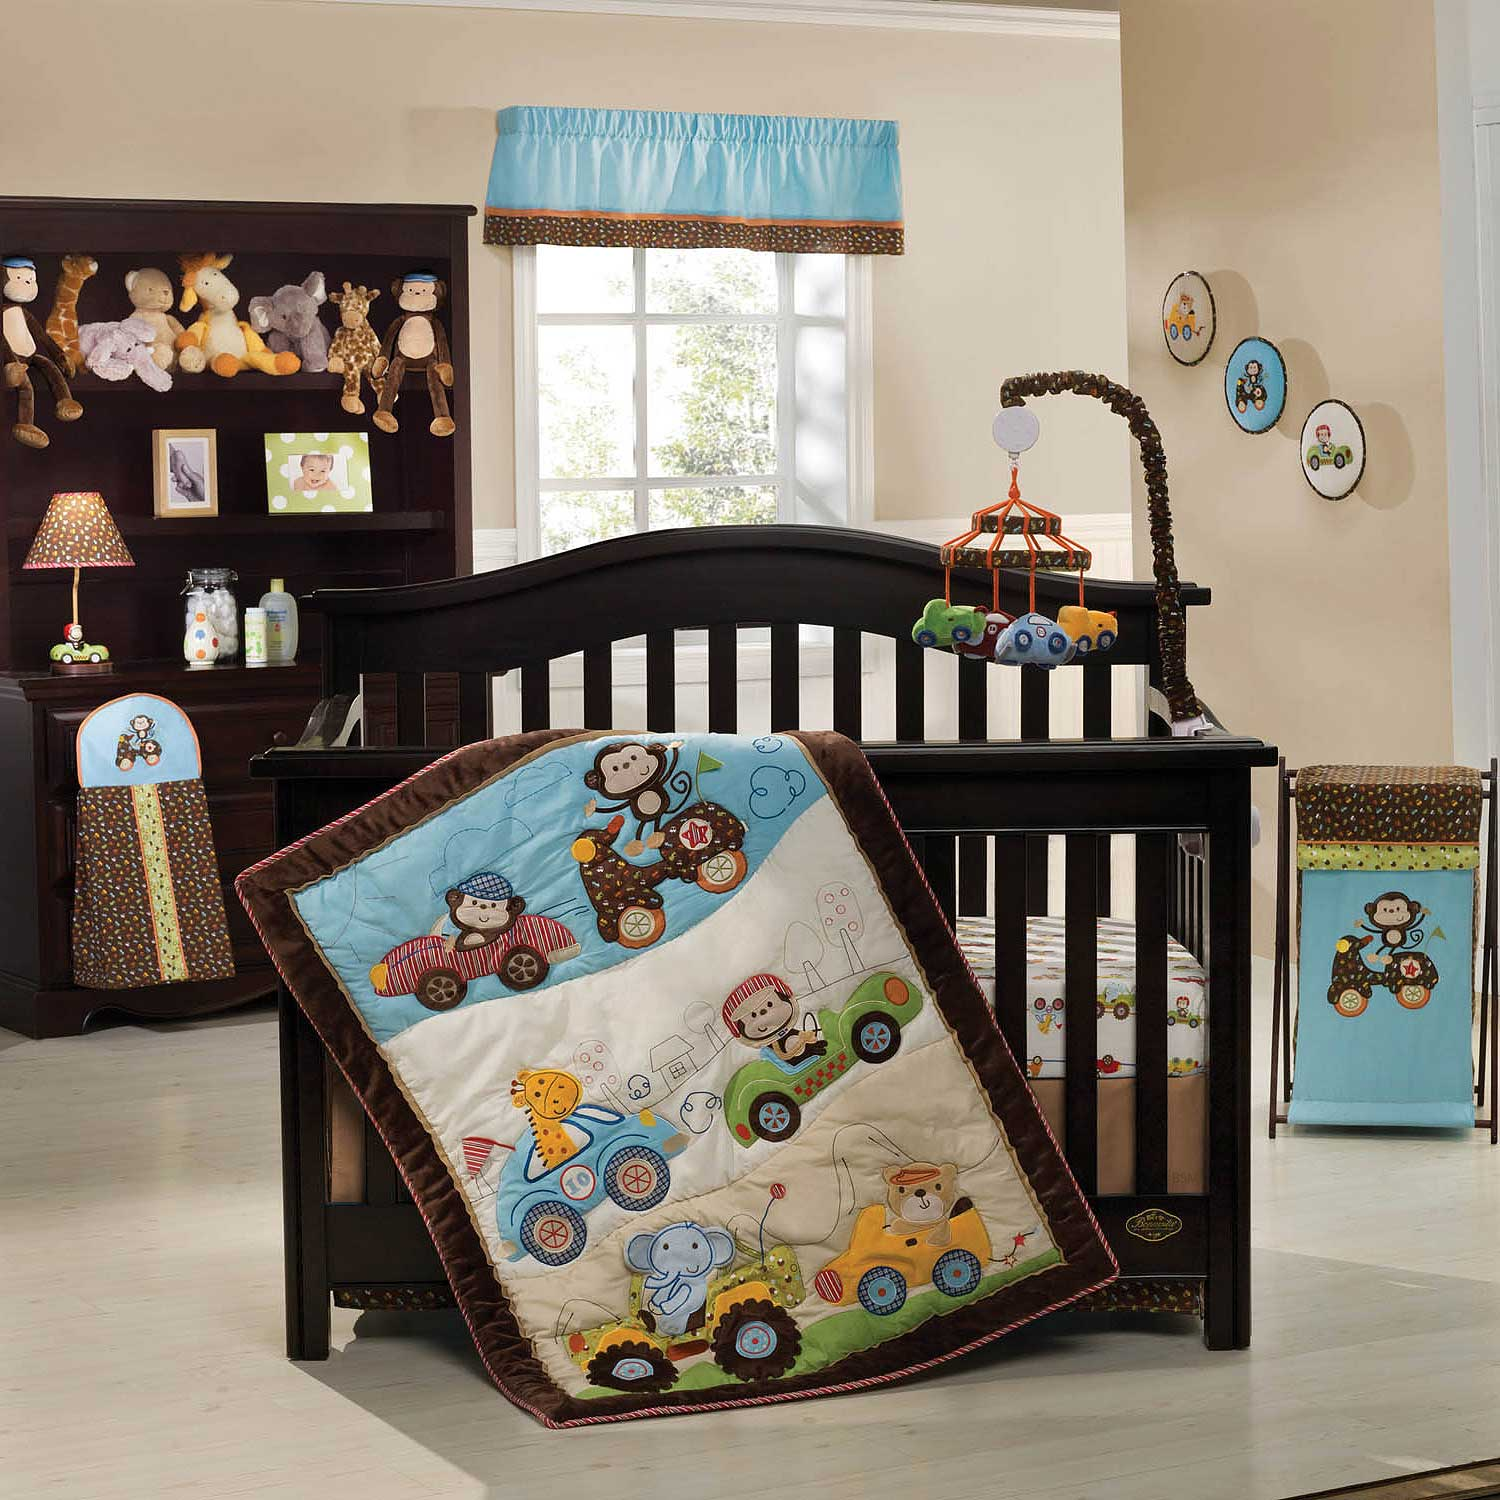 Sweet Nursery Bedding Ideas (Image 10 of 10)